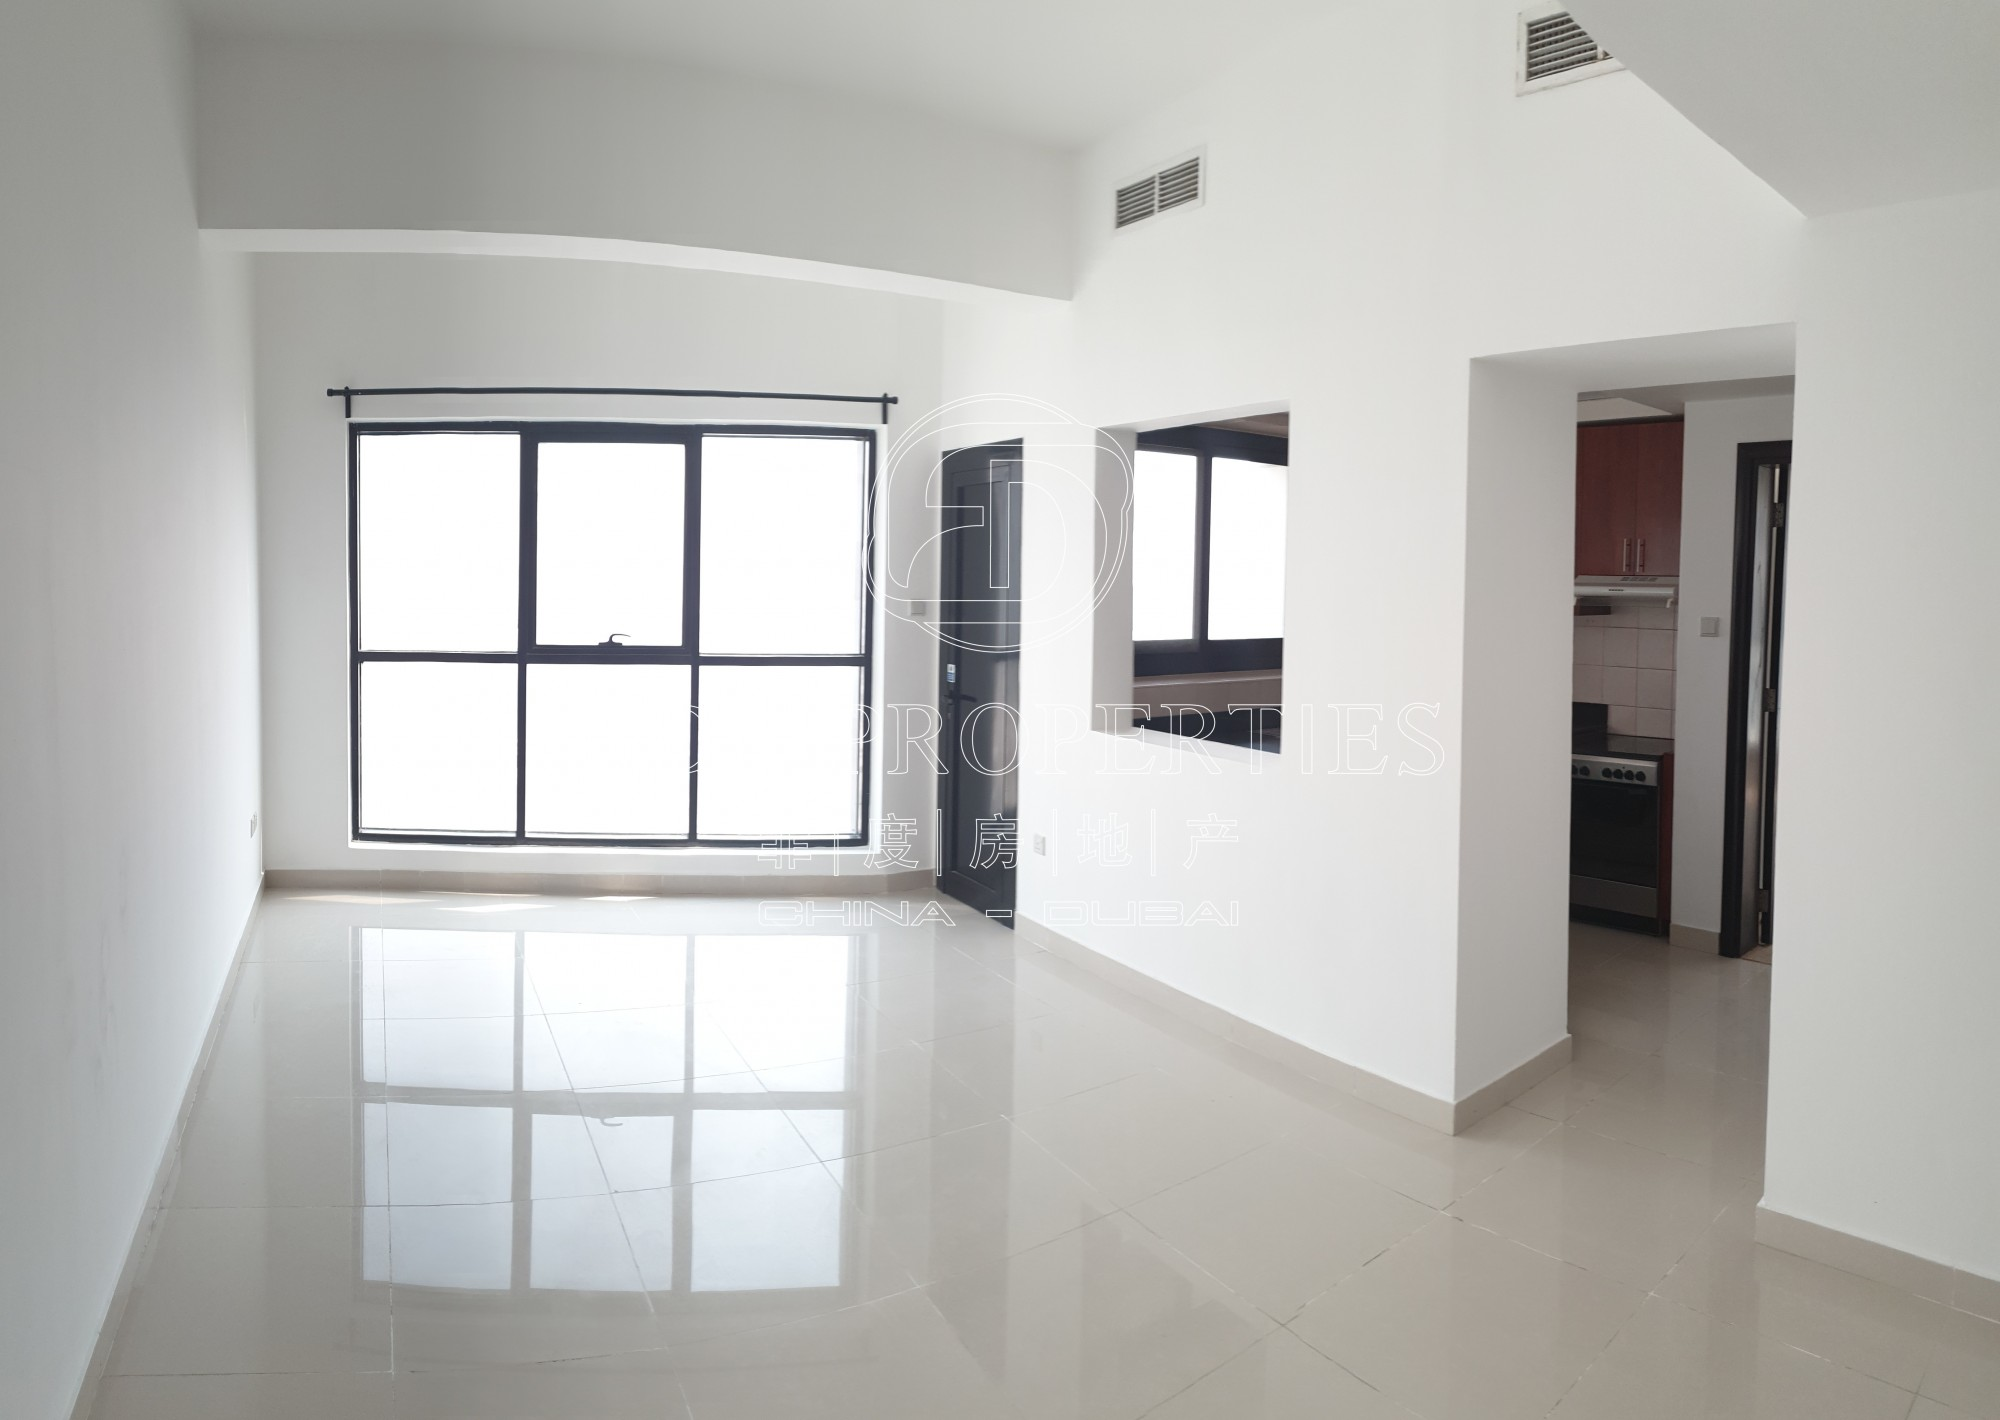 Chiller Free | Modern Apartment | Well Maintained